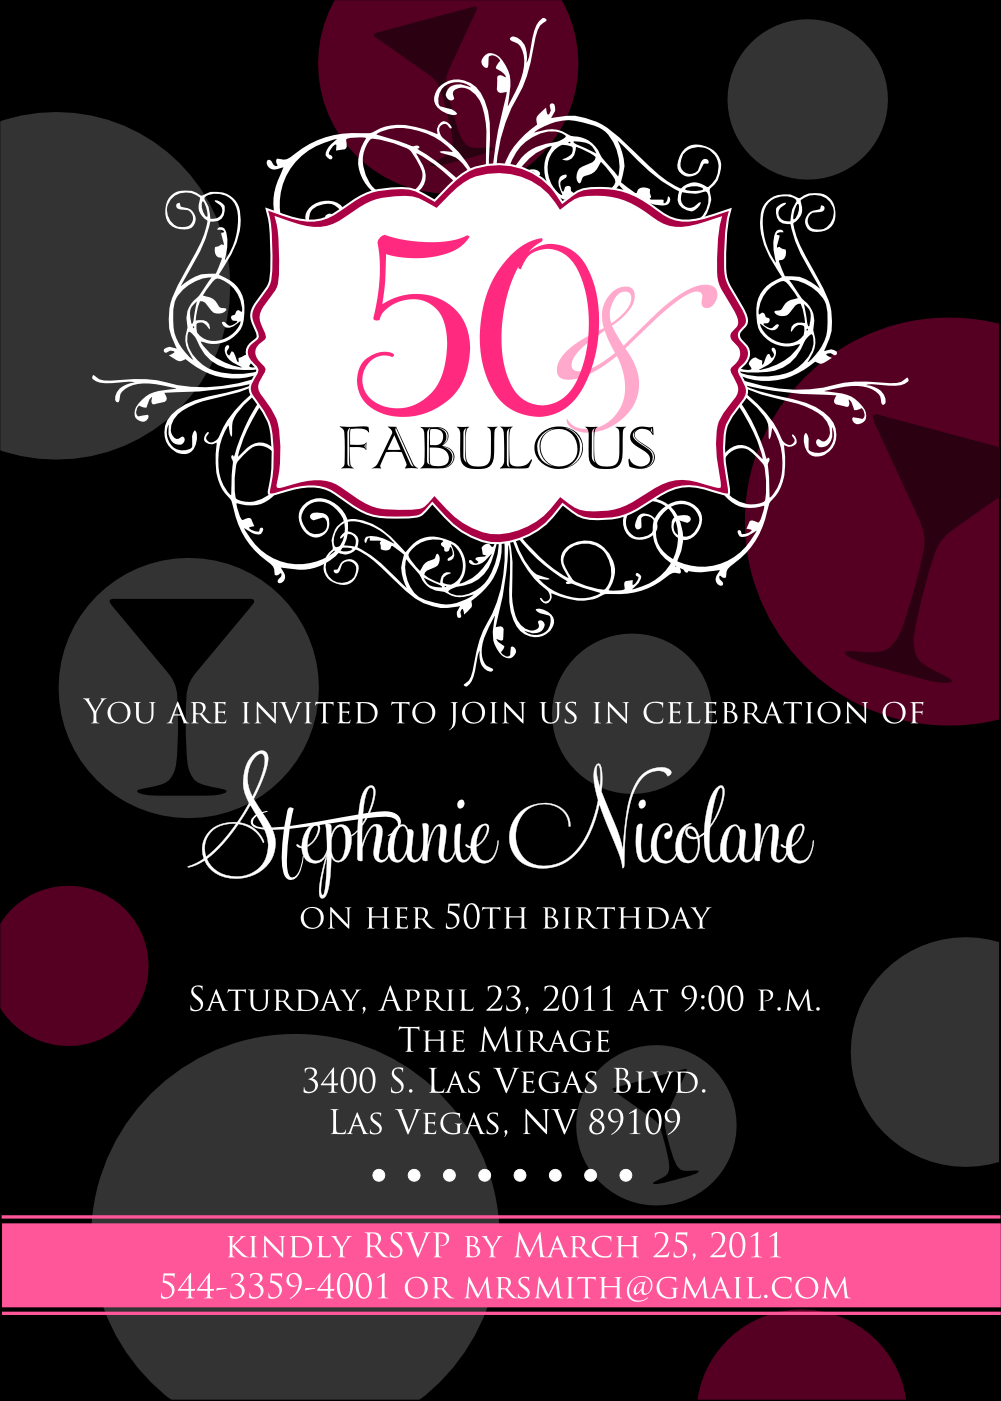 Fabulous 50th Birthday Invitations For Women